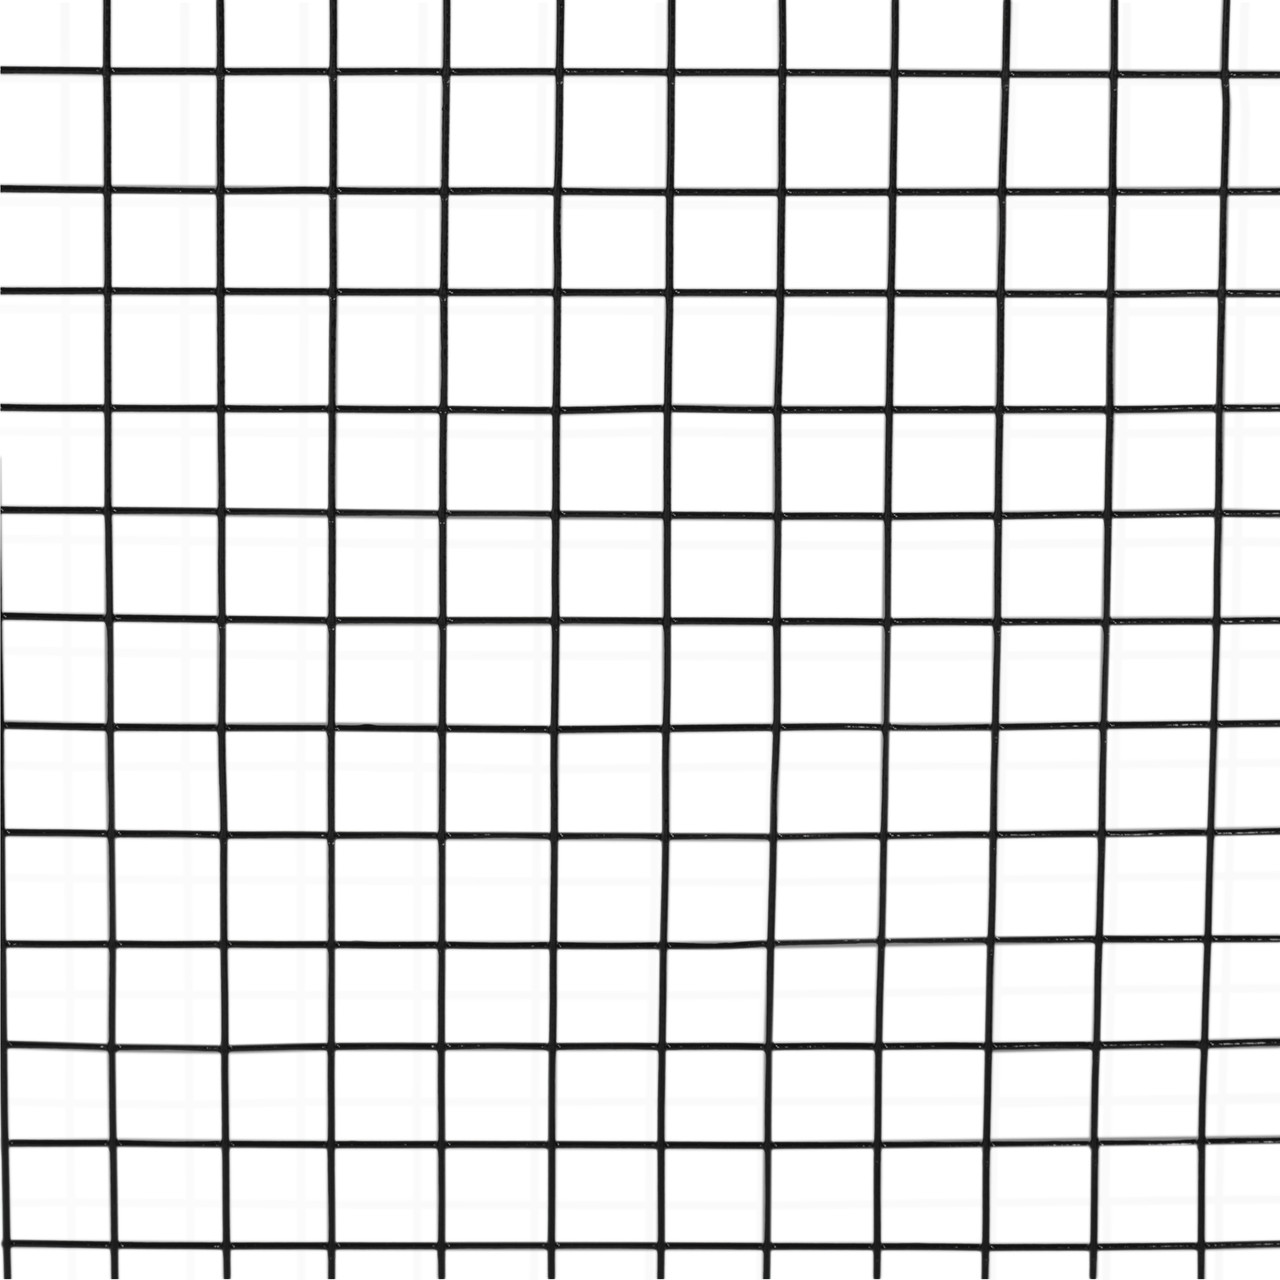 Fantastic wire mesh gauge photos electrical wiring diagram ideas 16 gauge black vinyl coated welded wire mesh size 1 inch by 1 inch greentooth